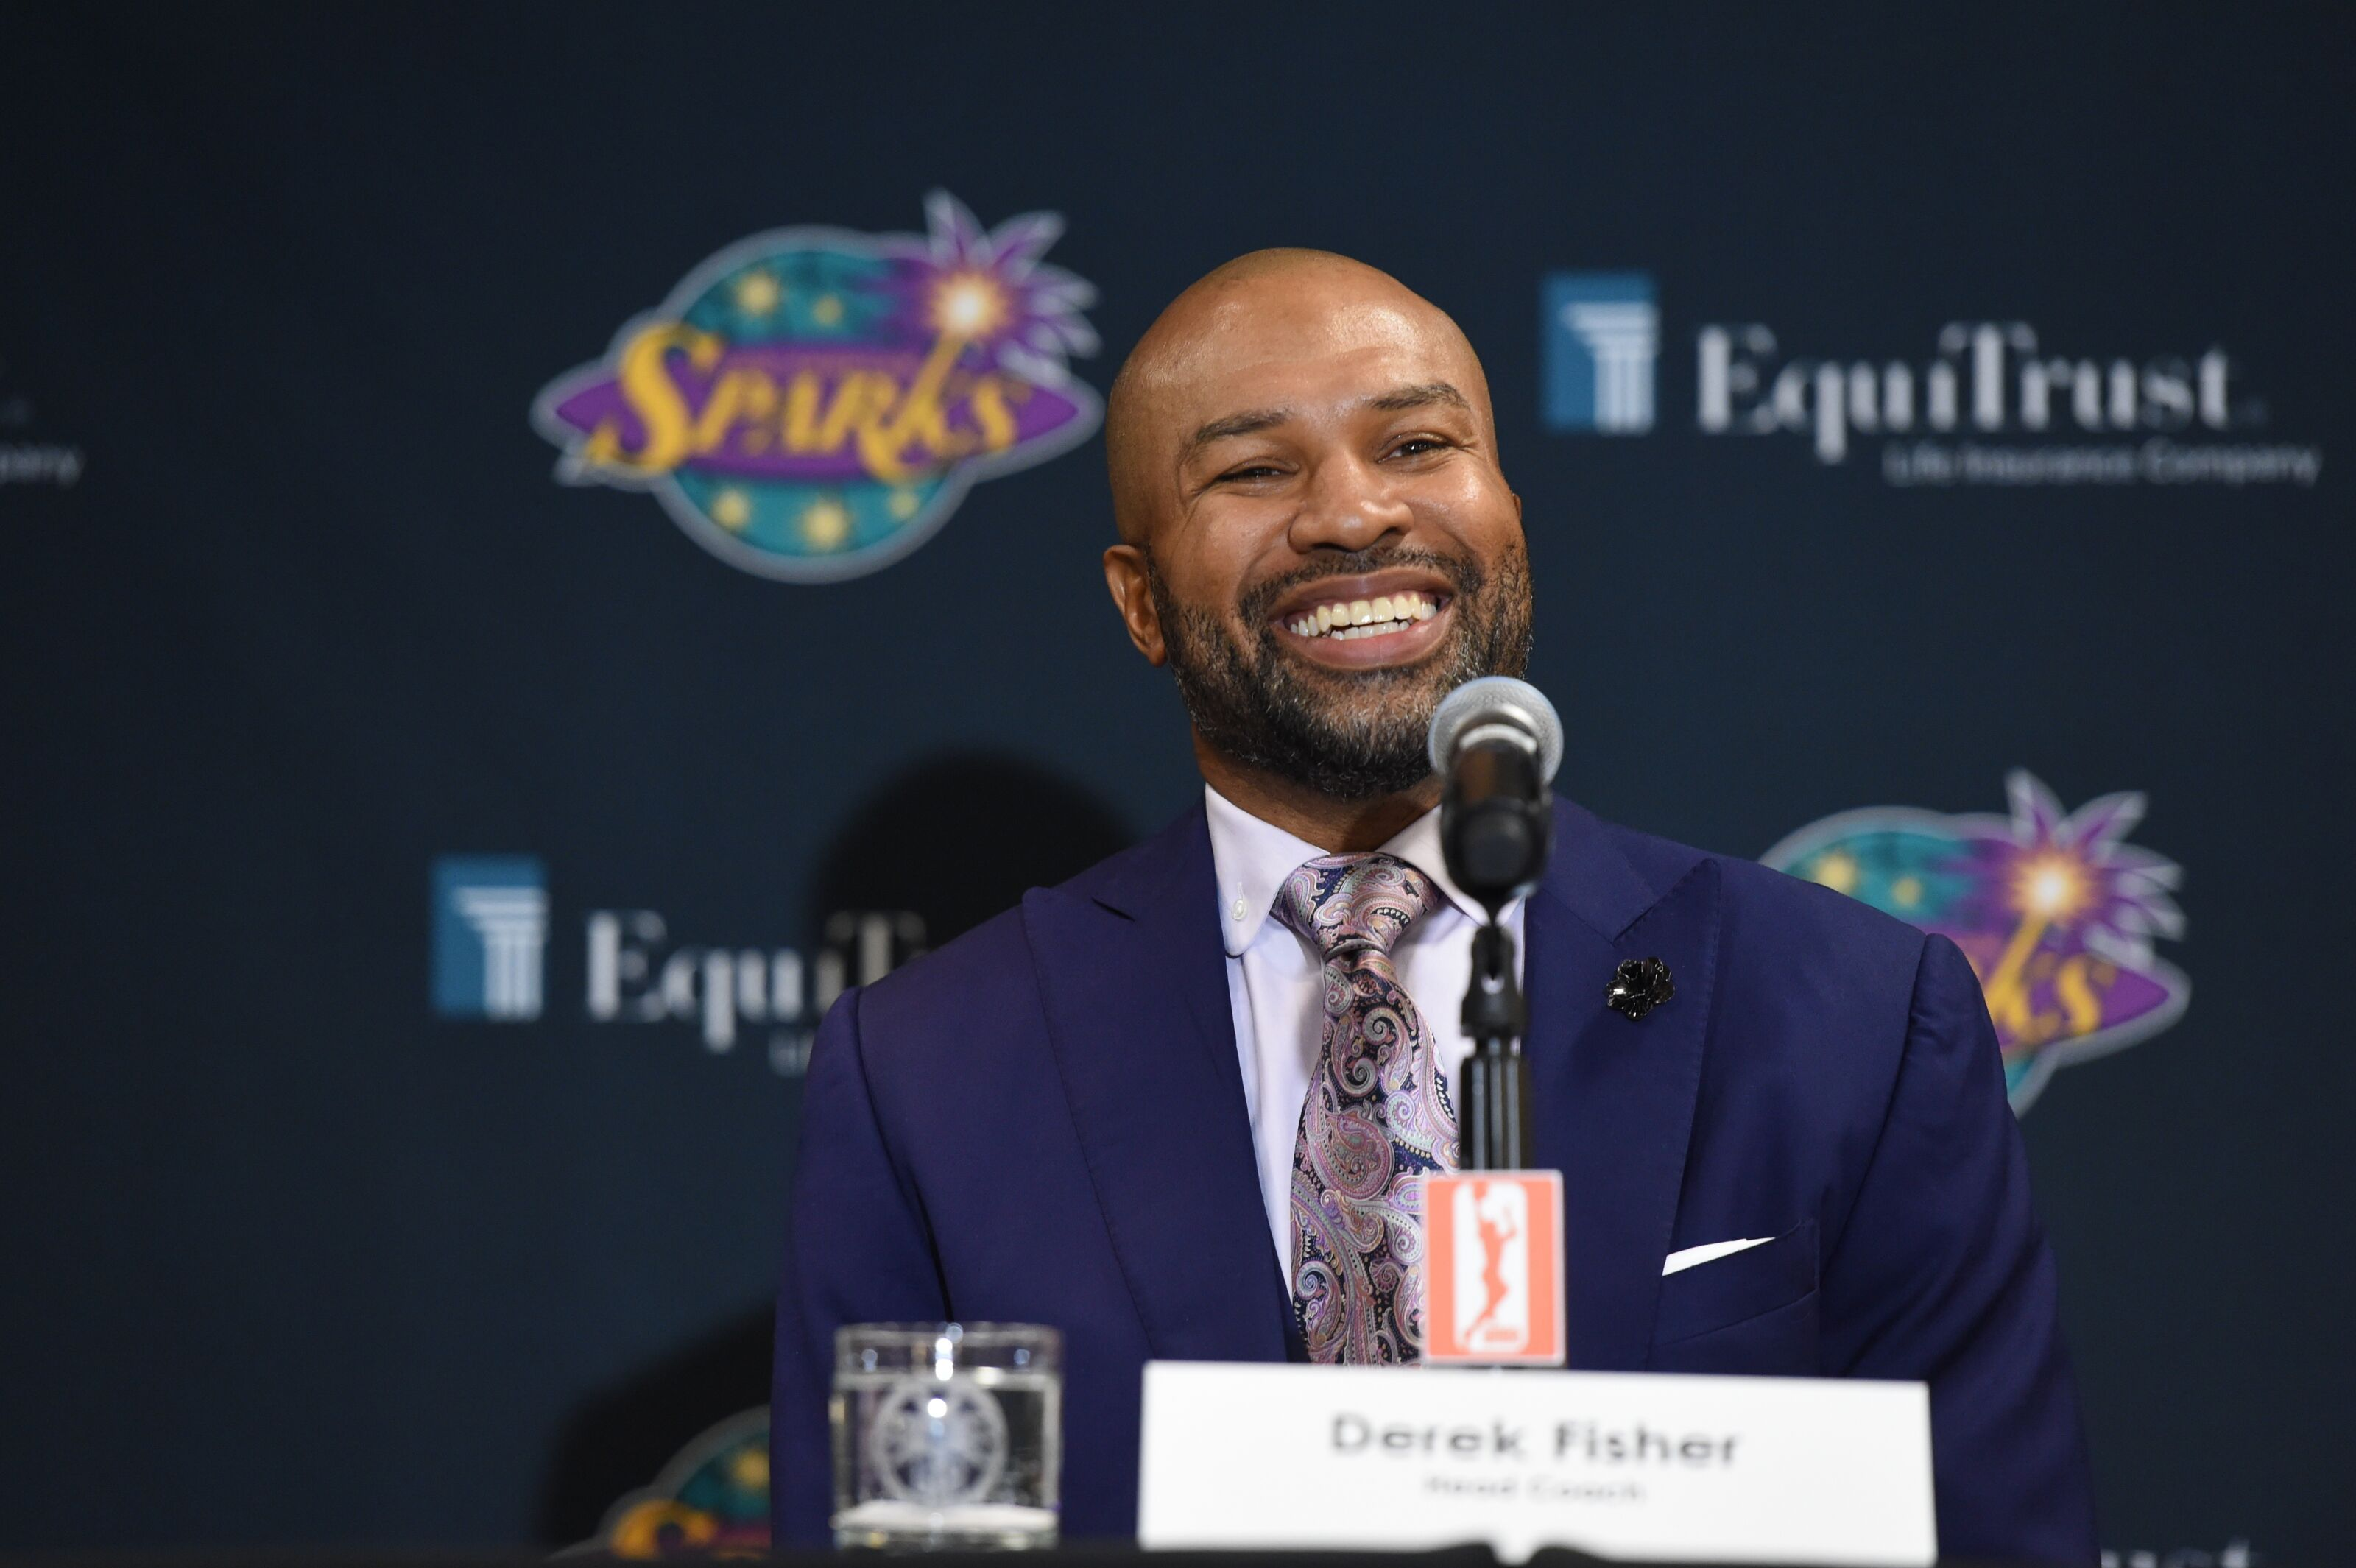 PODCAST: New coach Derek Fisher talks Los Angeles Sparks opportunity